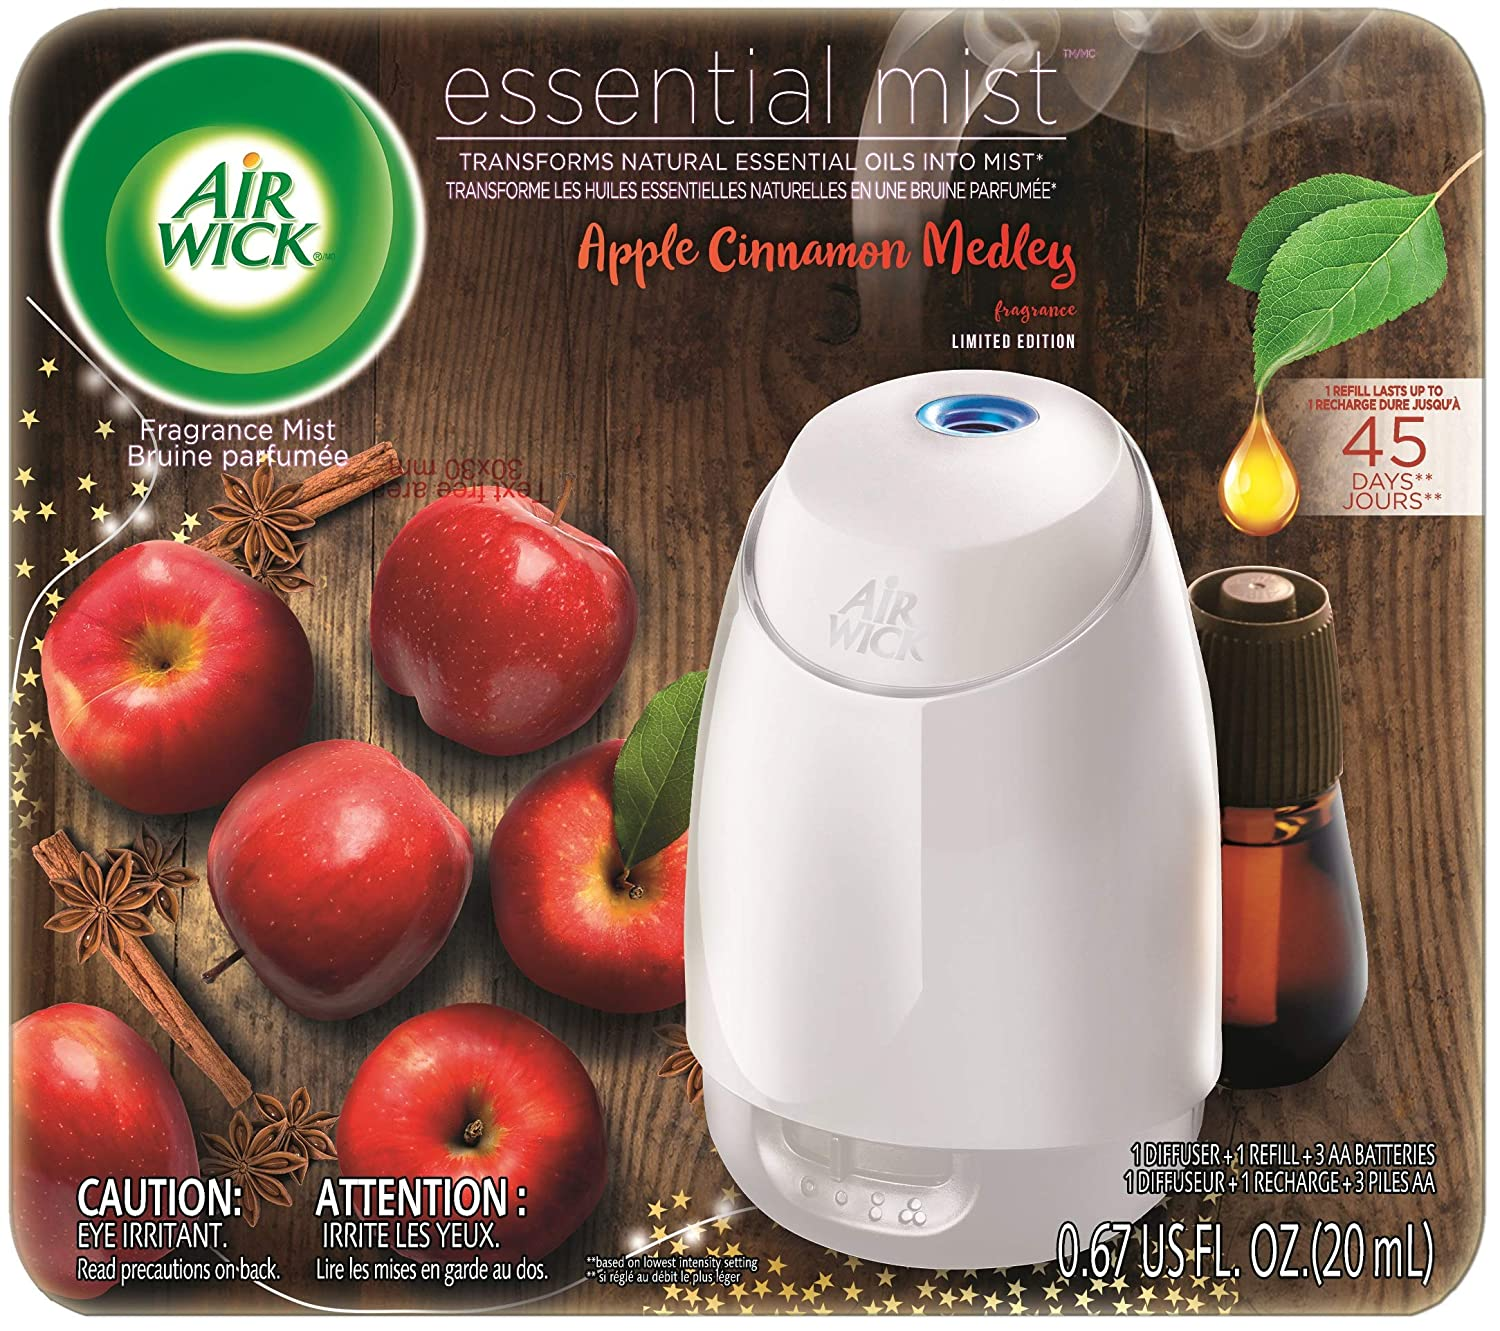 Air Wick Essential Mist, Essential Oil Diffuser, (Diffuser + 1 Refill), Apple Cinnamon Medley, Fall Decor, Air Freshener